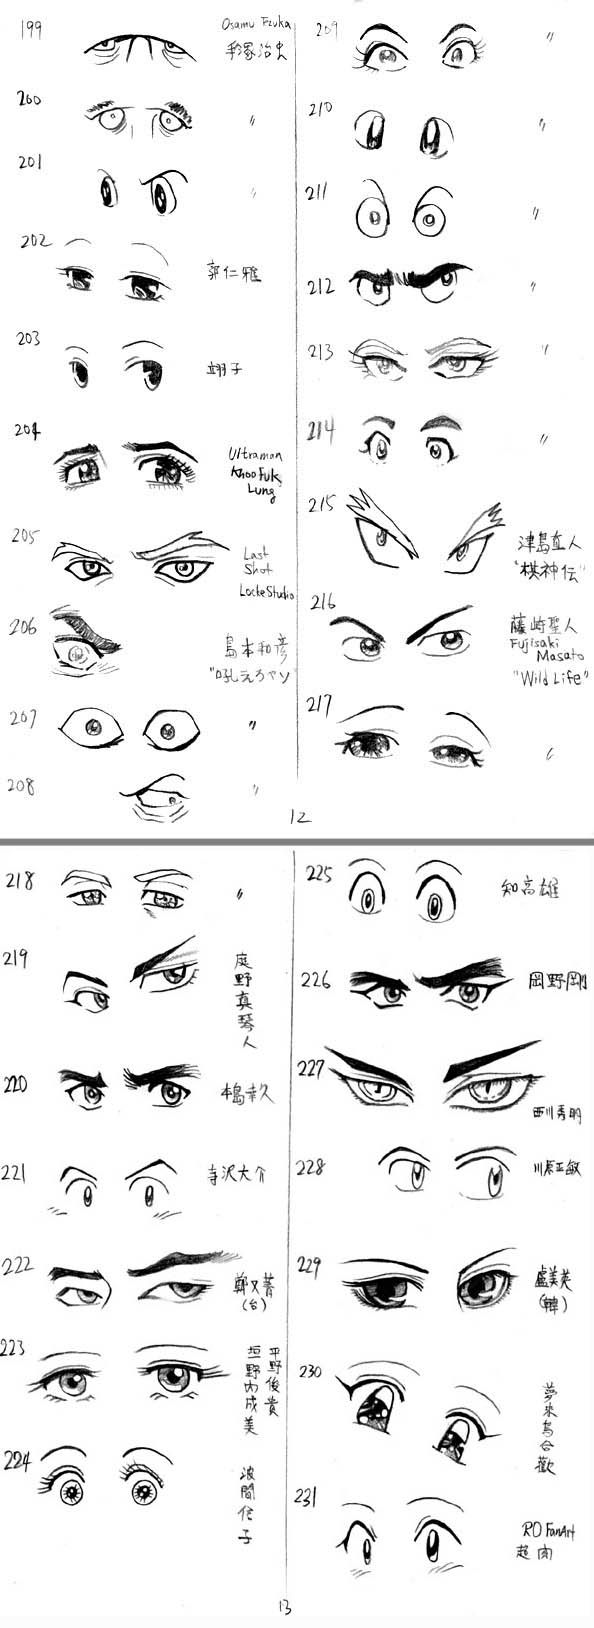 12 Useful Eyes Drawing References and Tutorials | Welcome to Freaksigner